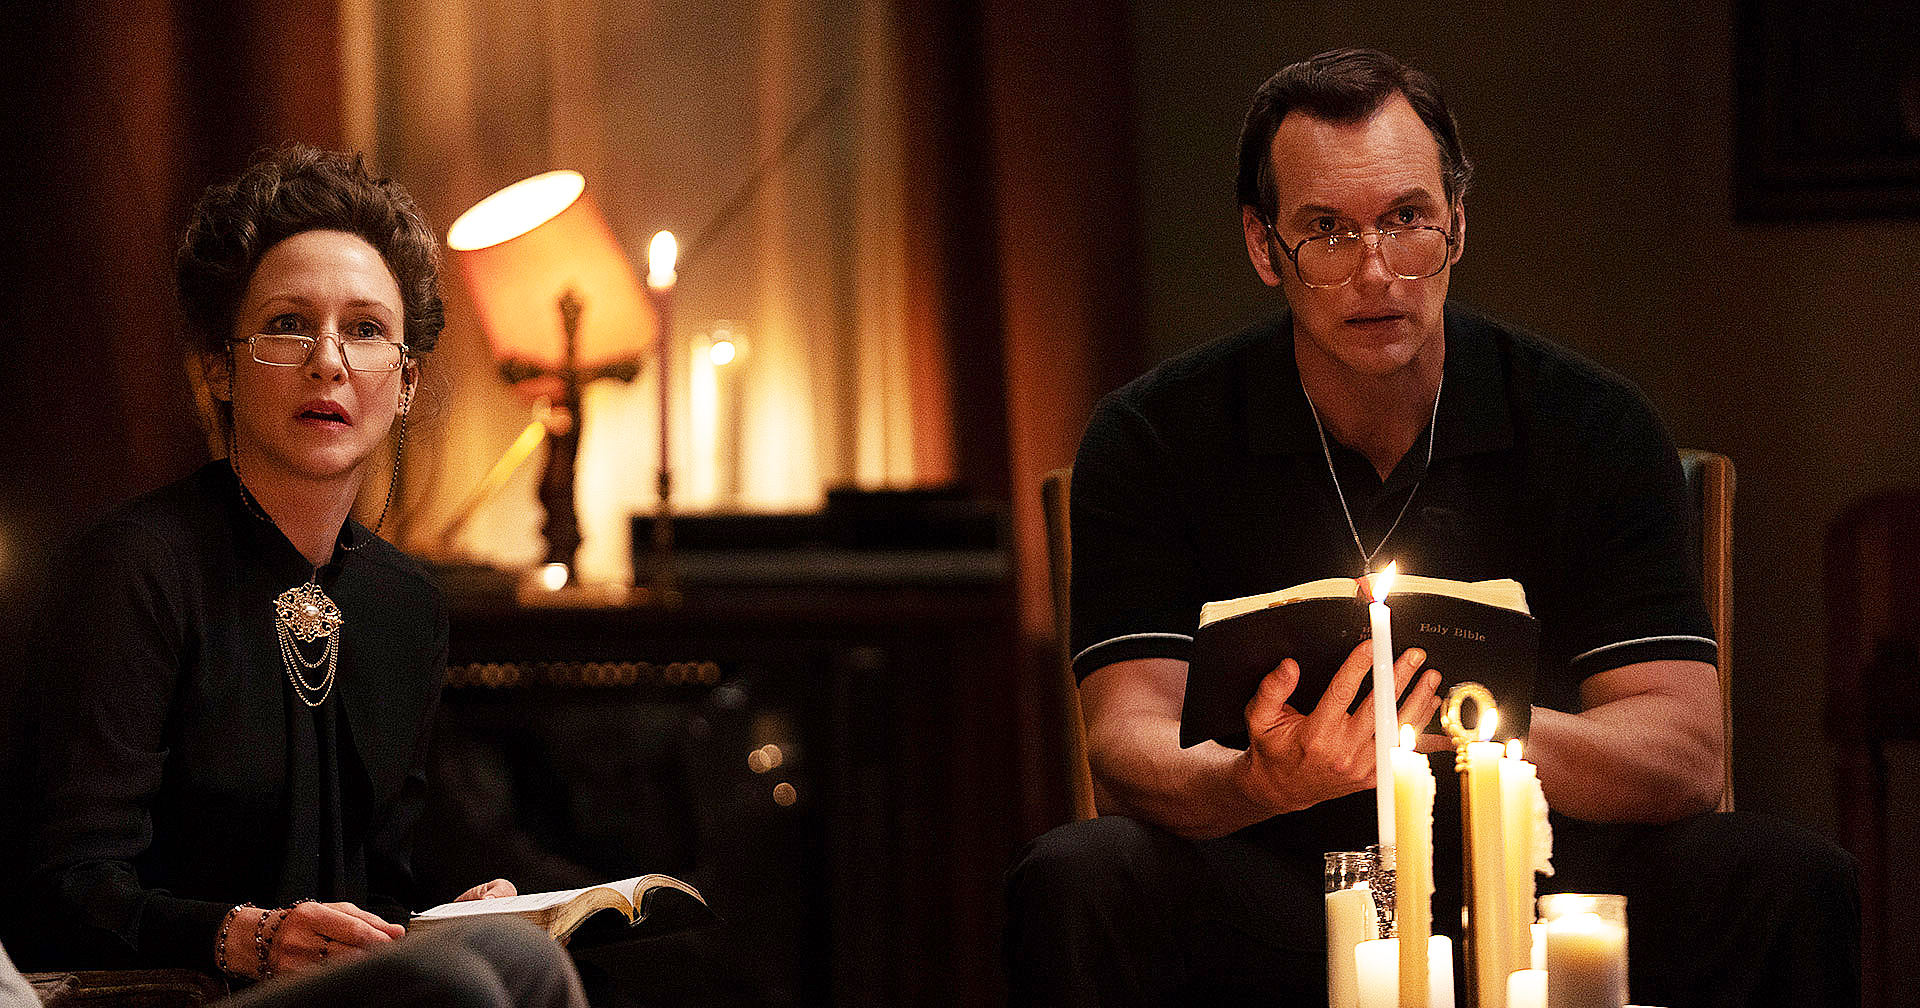 The Conjuring : The Devil Made Me Do It